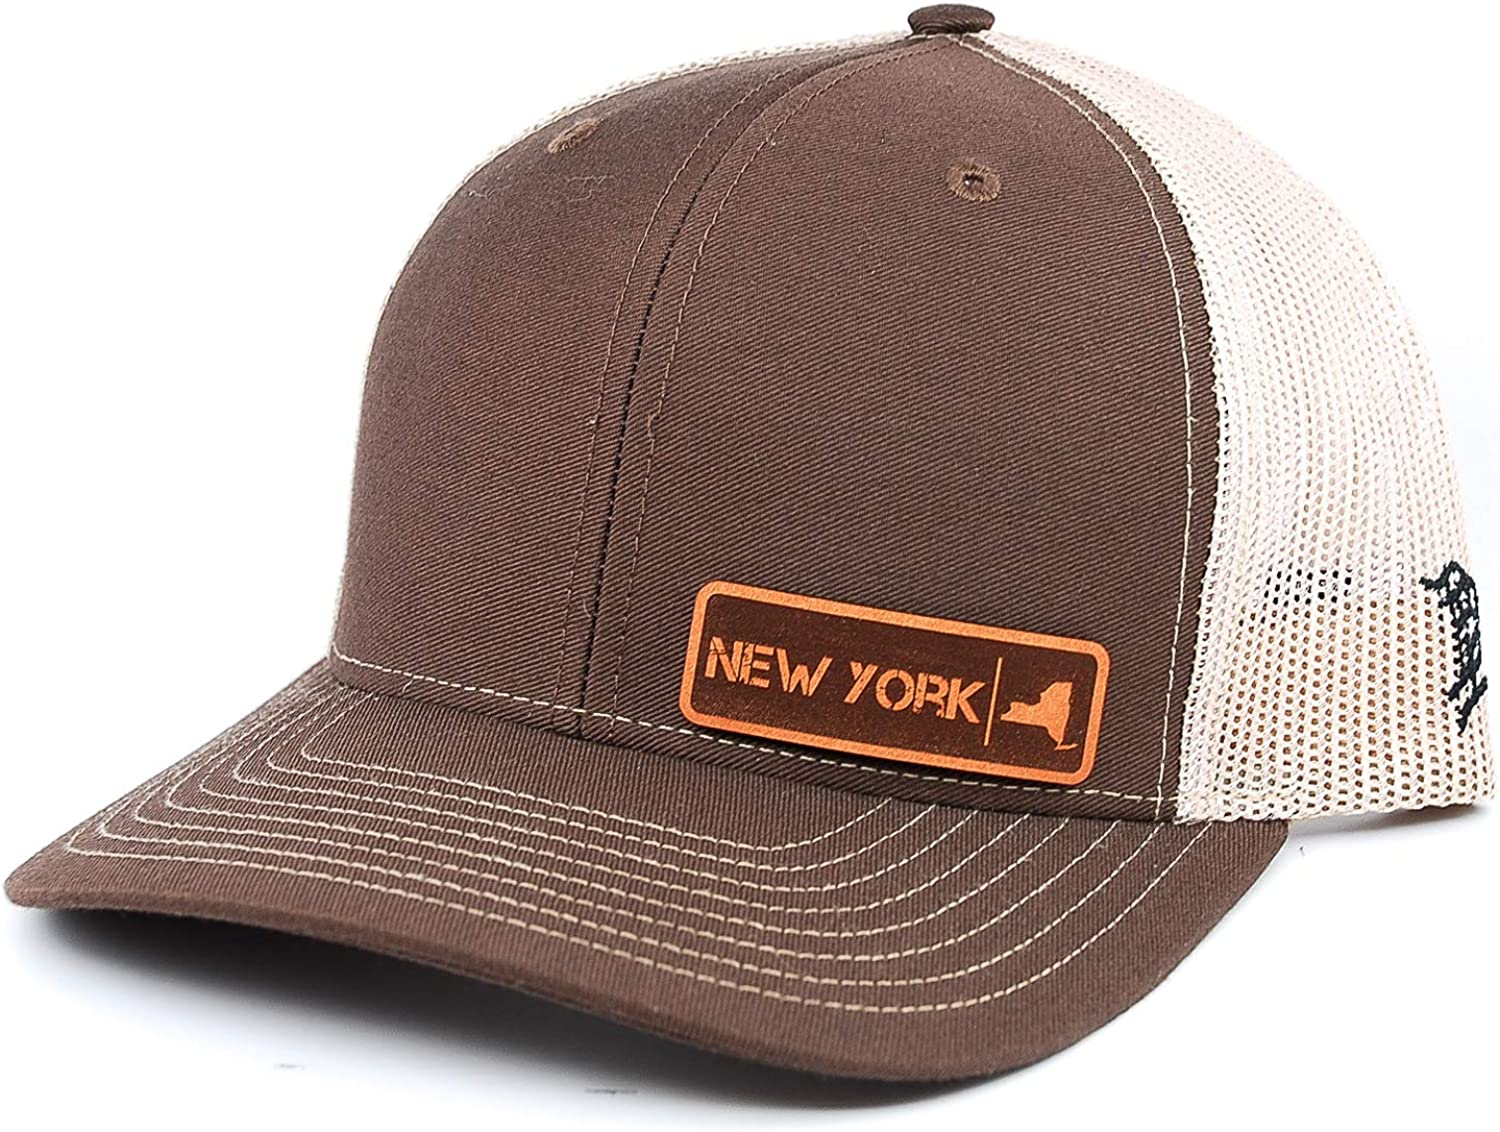 OSFA//Brown//Tan Branded Bills /'New York Native Leather Patch Hat Curved Trucker